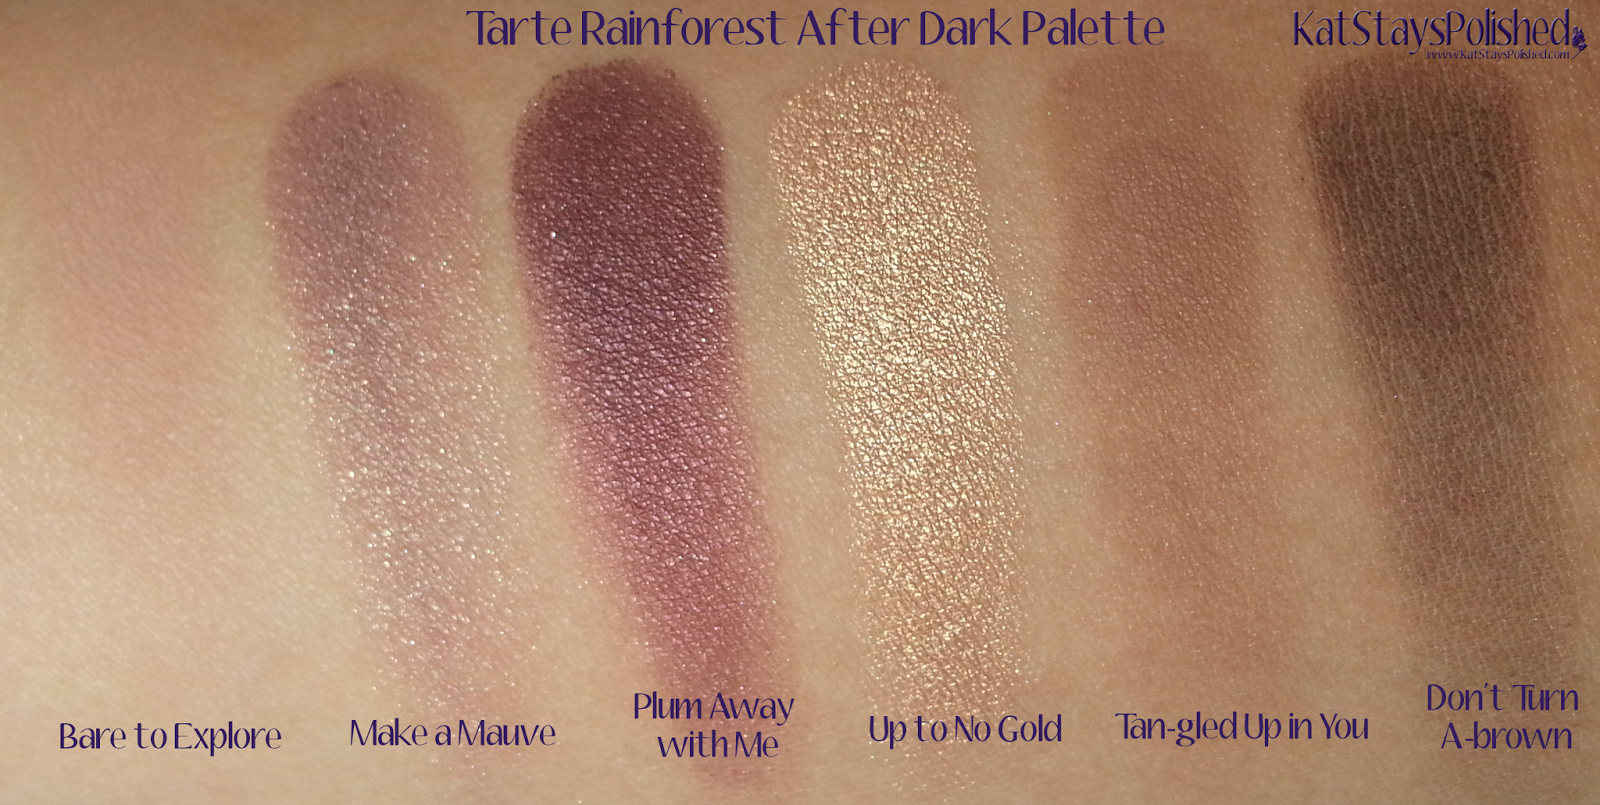 Tarte Rainforest After Dark Palette - Eye Colors | Kat Stays Polished